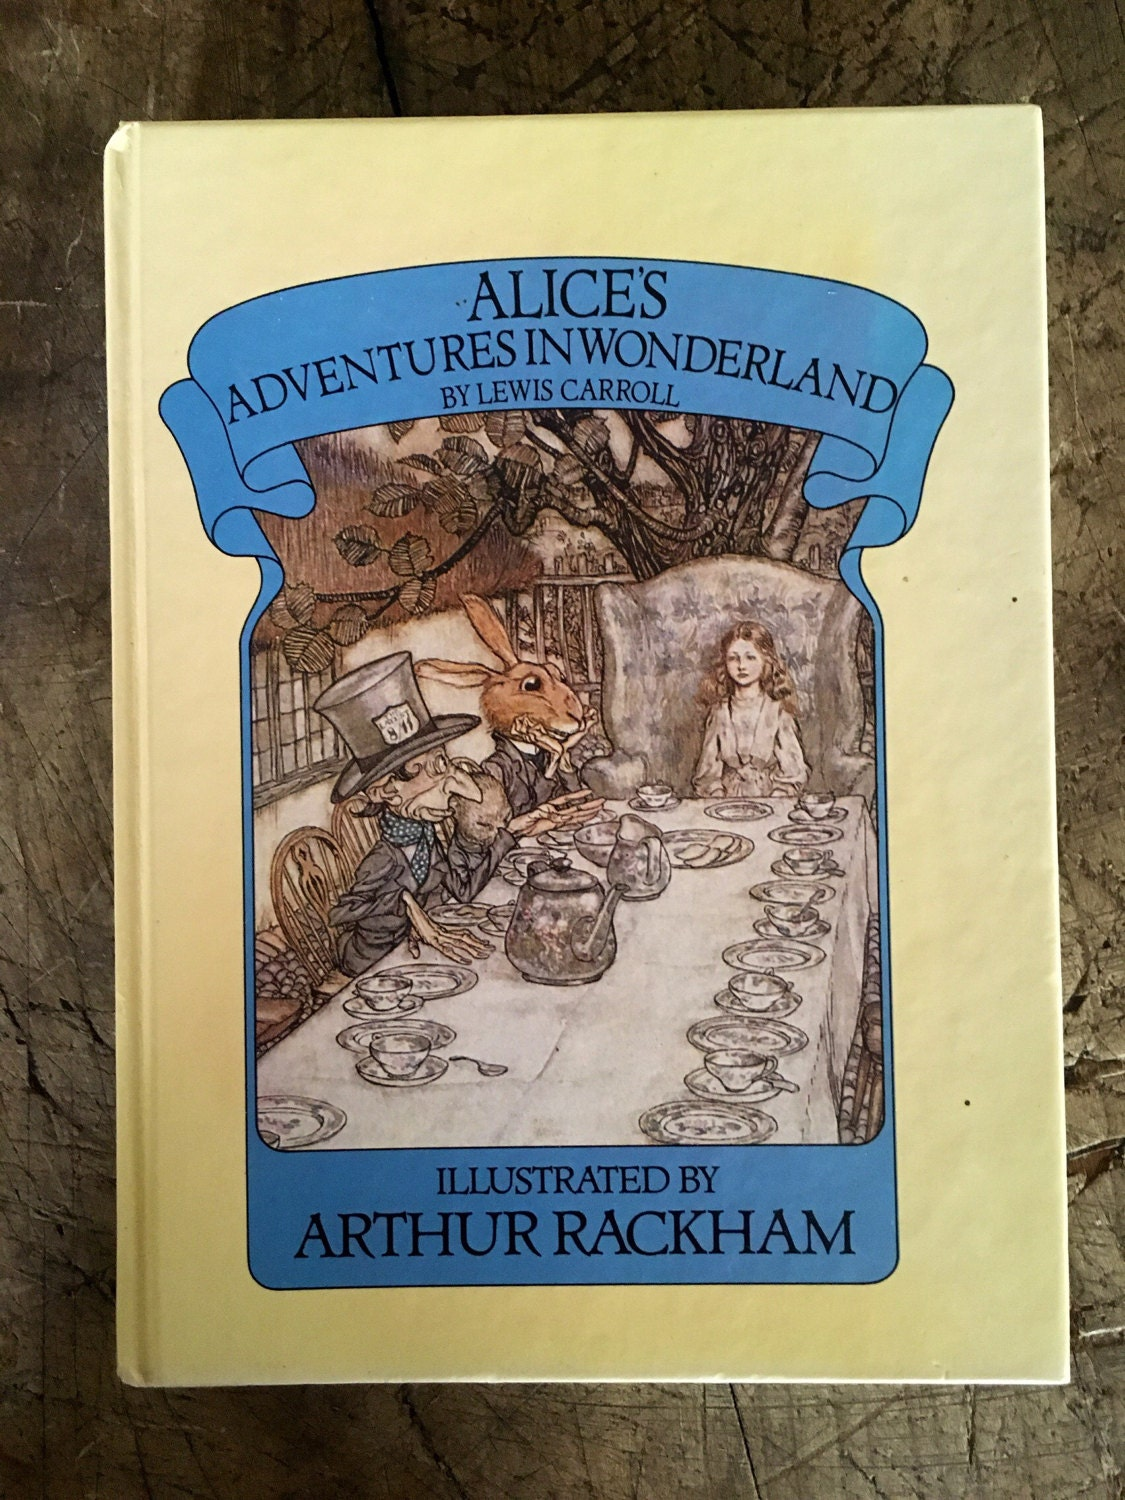 Alice in Wonderland 1980s Alice book Lewis Carroll Arthur Rackham  white rabbit  mad hatter  tea party